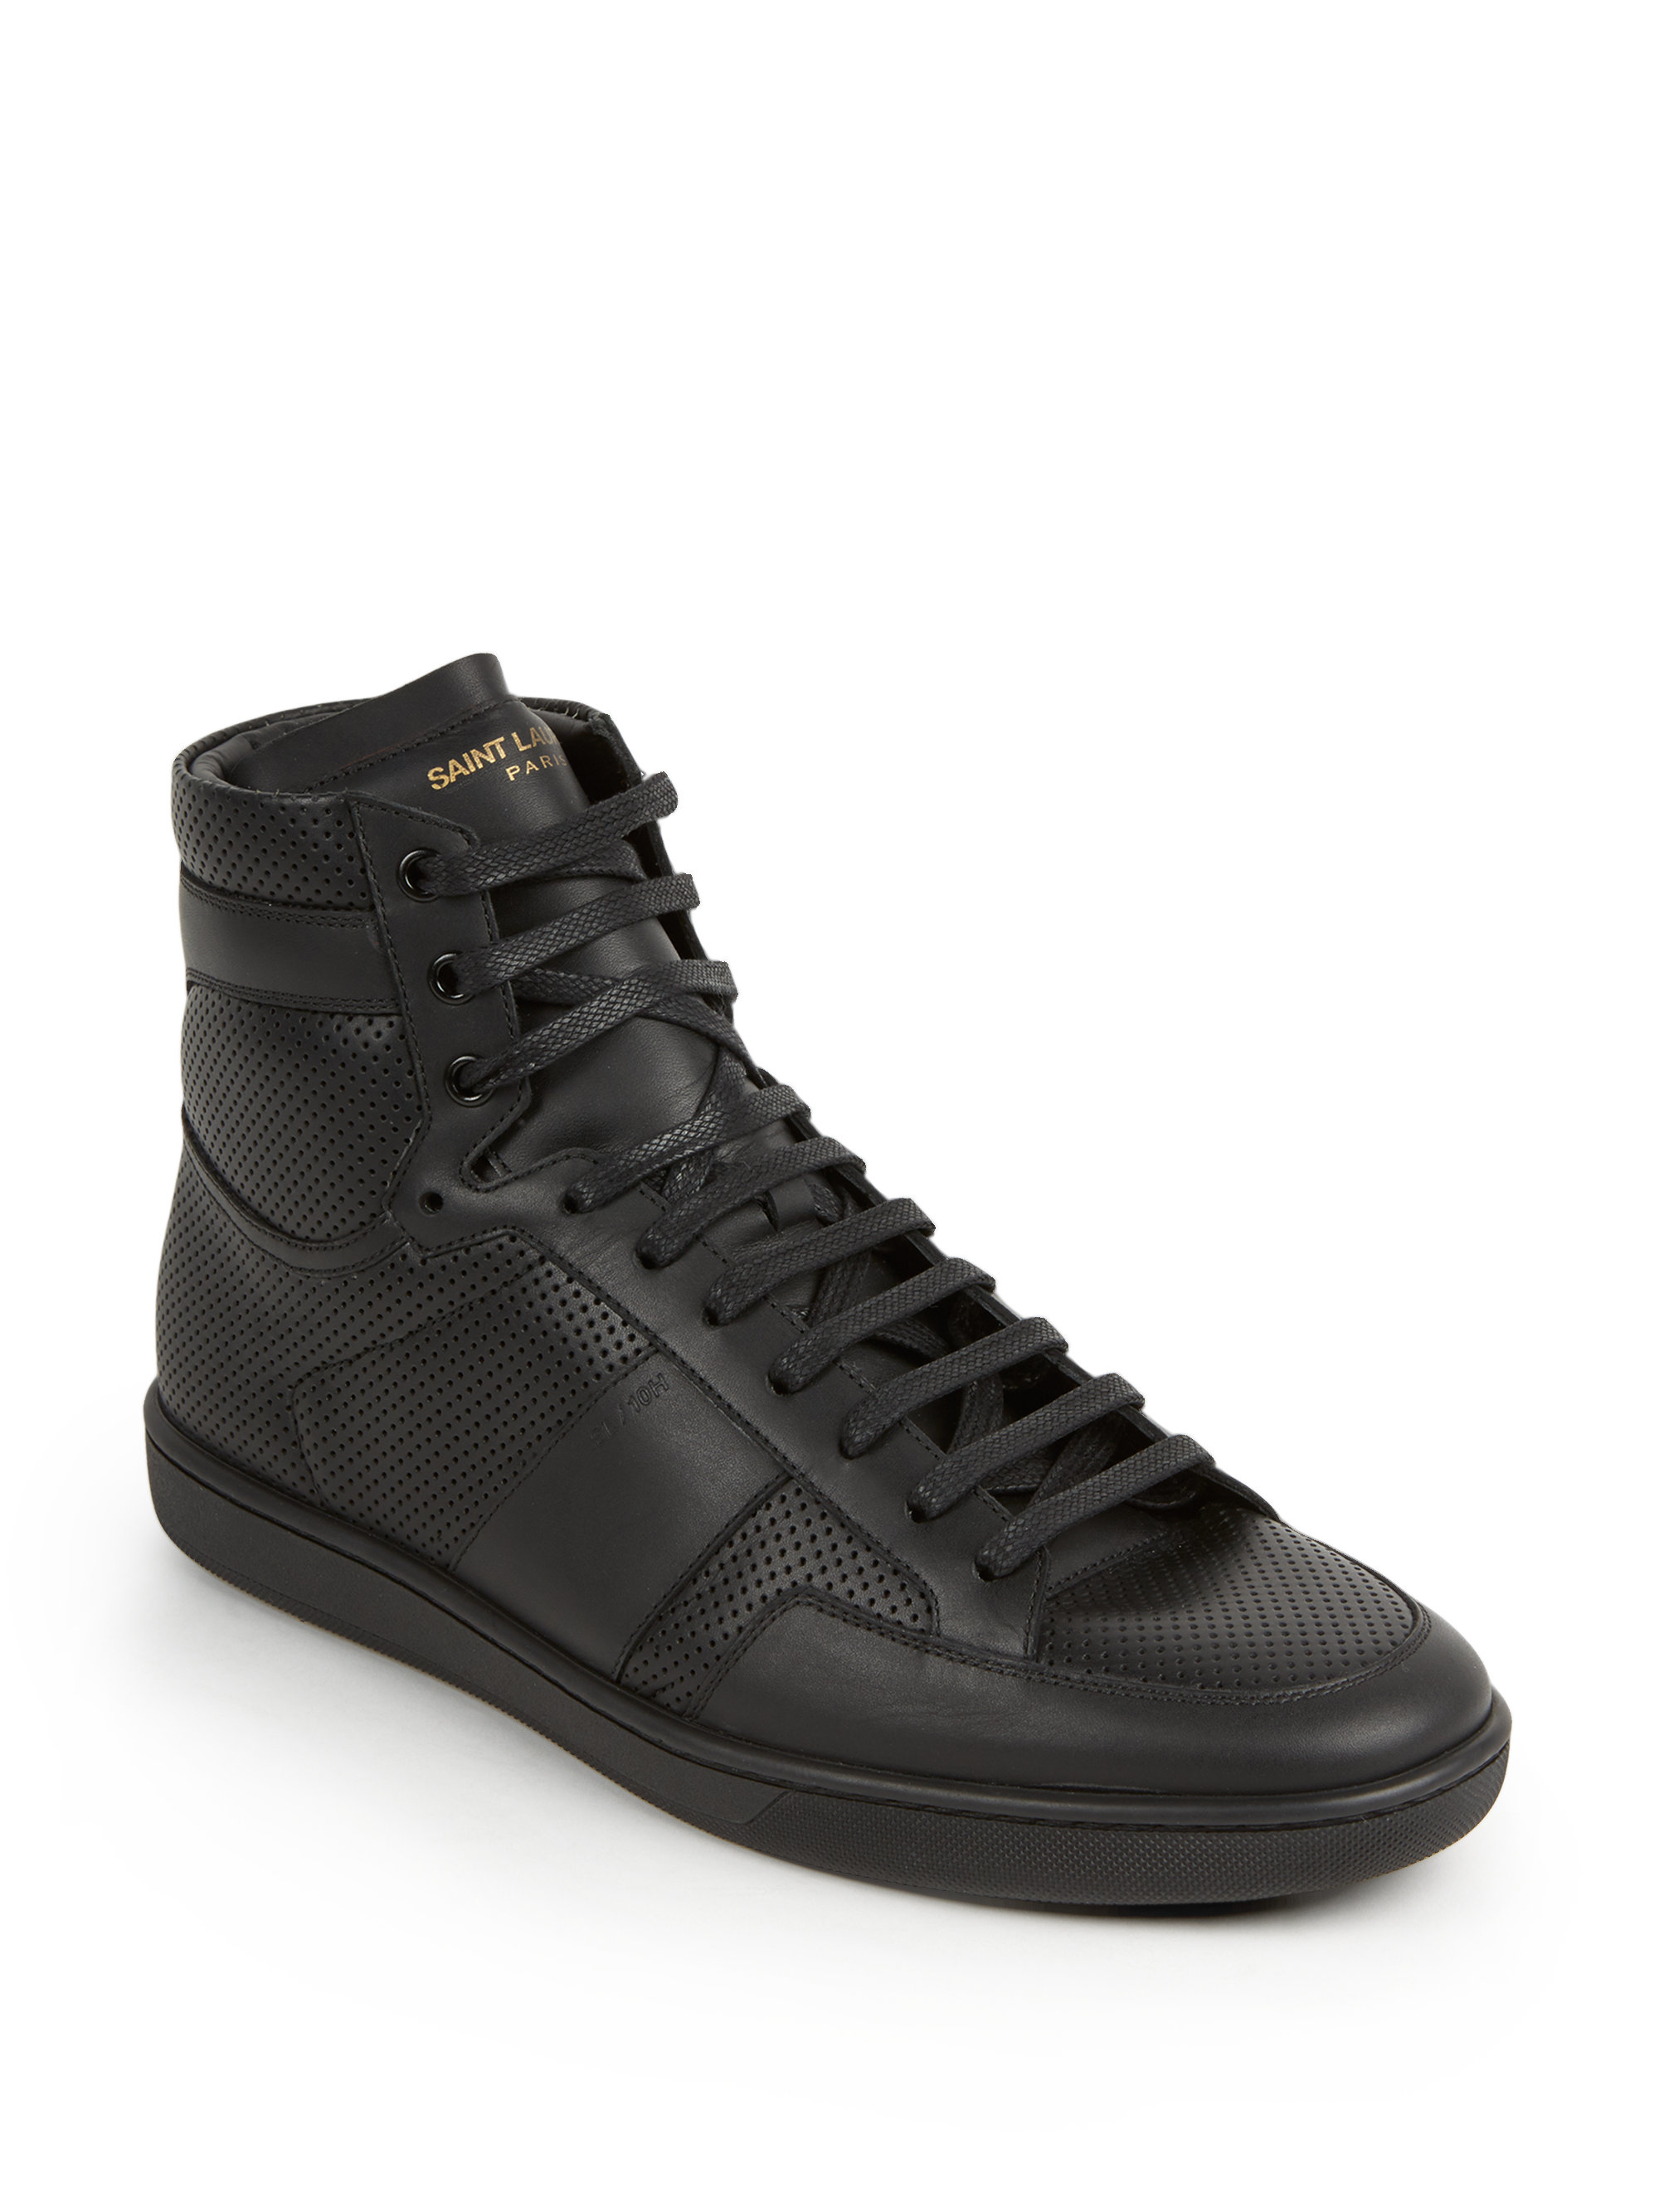 saint laurent tonal perforated leather high top sneakers in black for men lyst. Black Bedroom Furniture Sets. Home Design Ideas